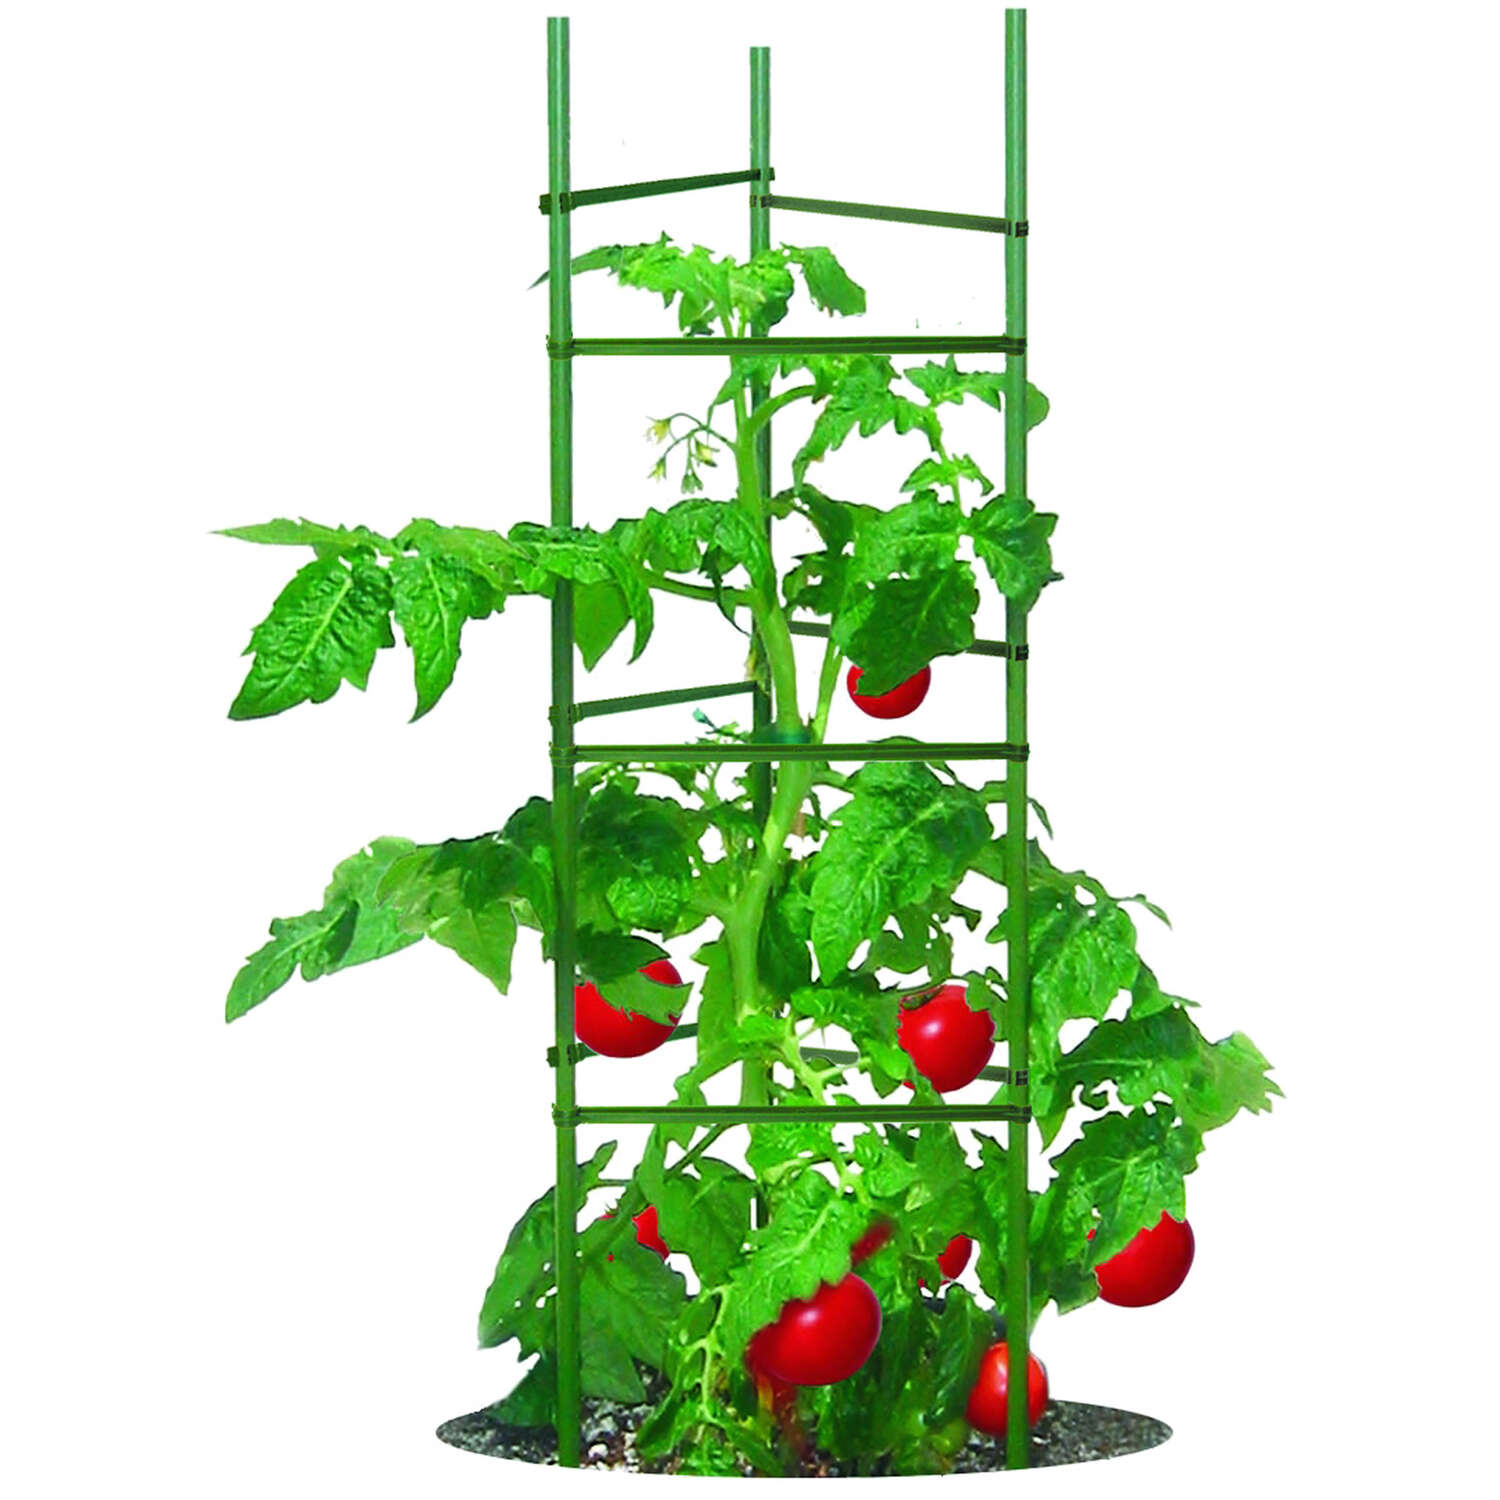 Gardeners Blue Ribbon  60 in. H x 12 in. W Green  Steel  Tomato Cage